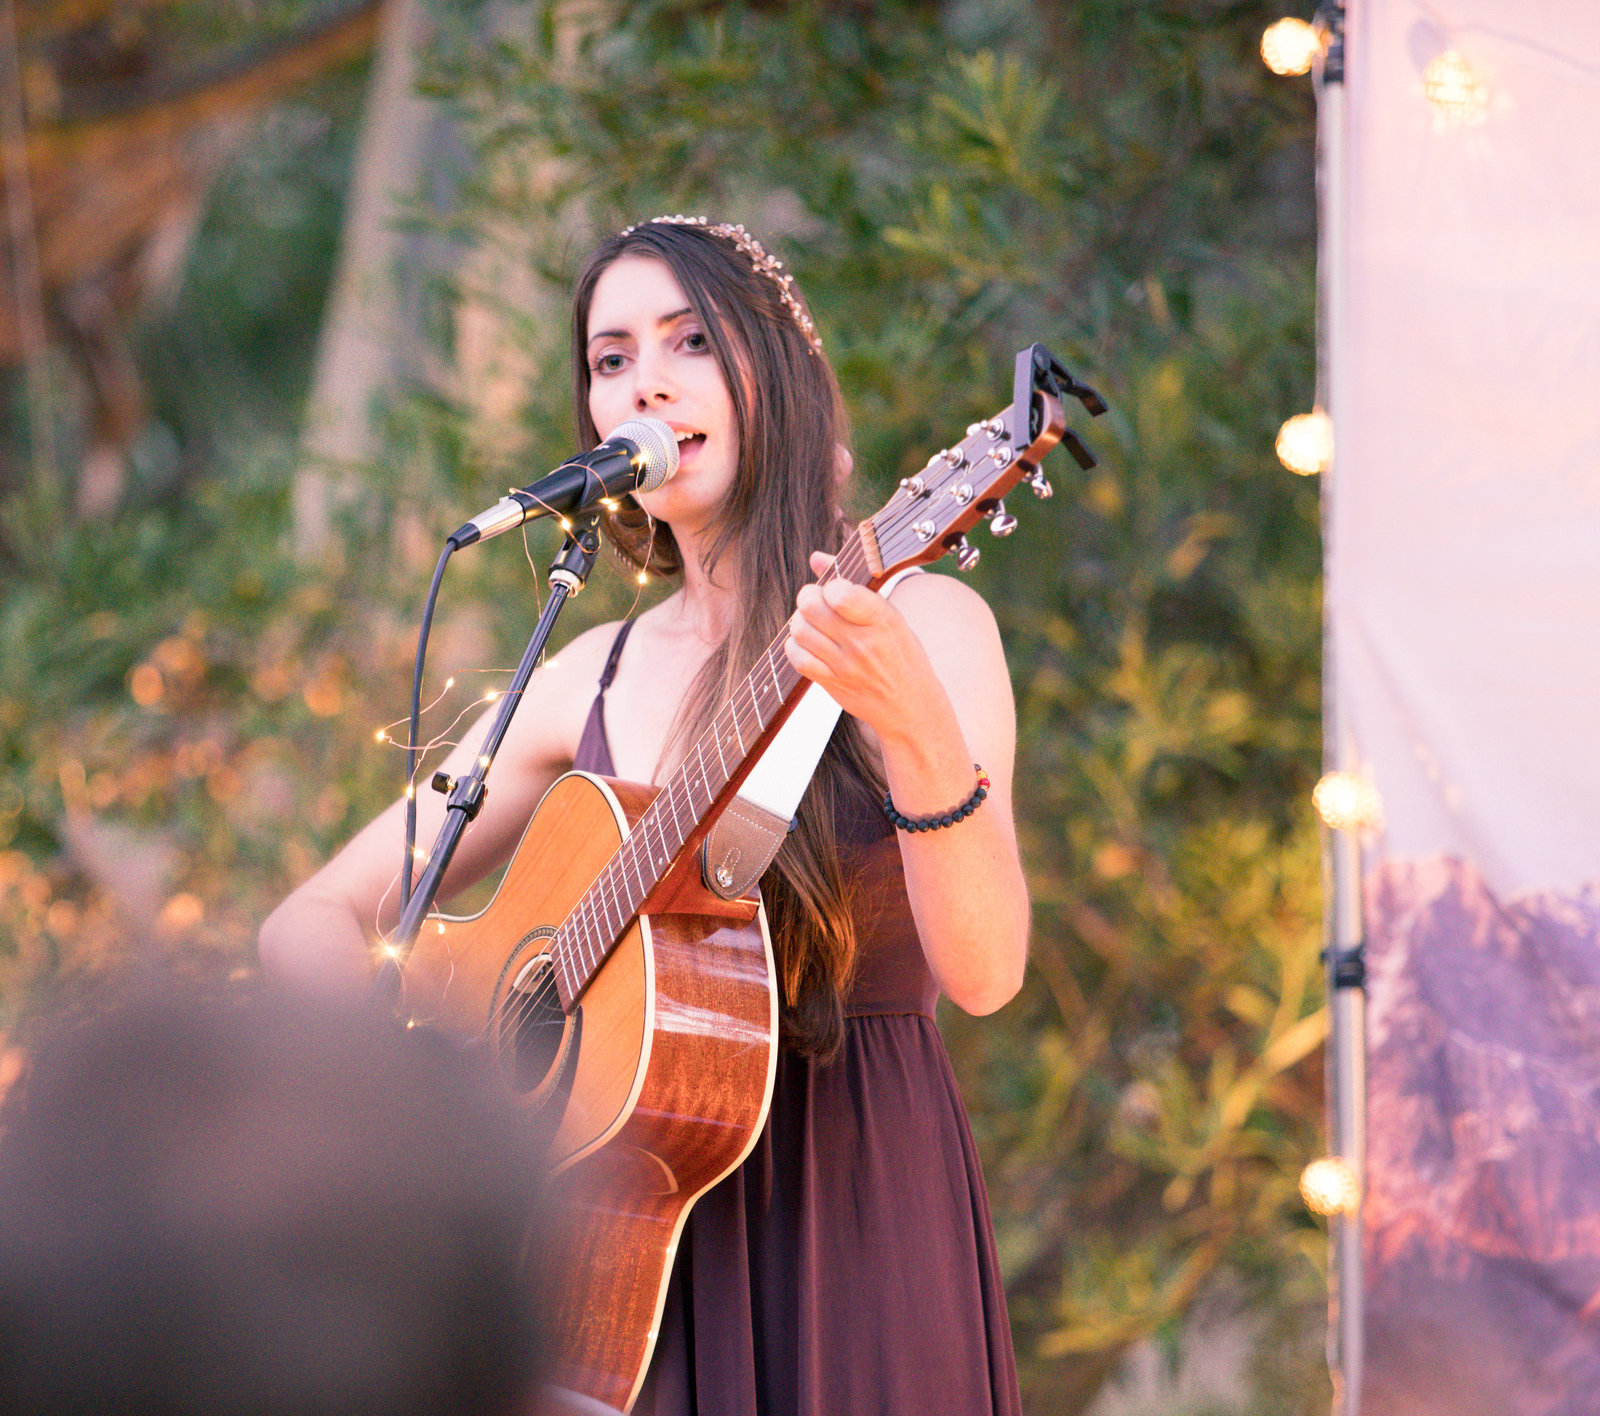 jessica-allossery-house-concert-usa-tour-canada-indie-singer-songwriter-folk-3